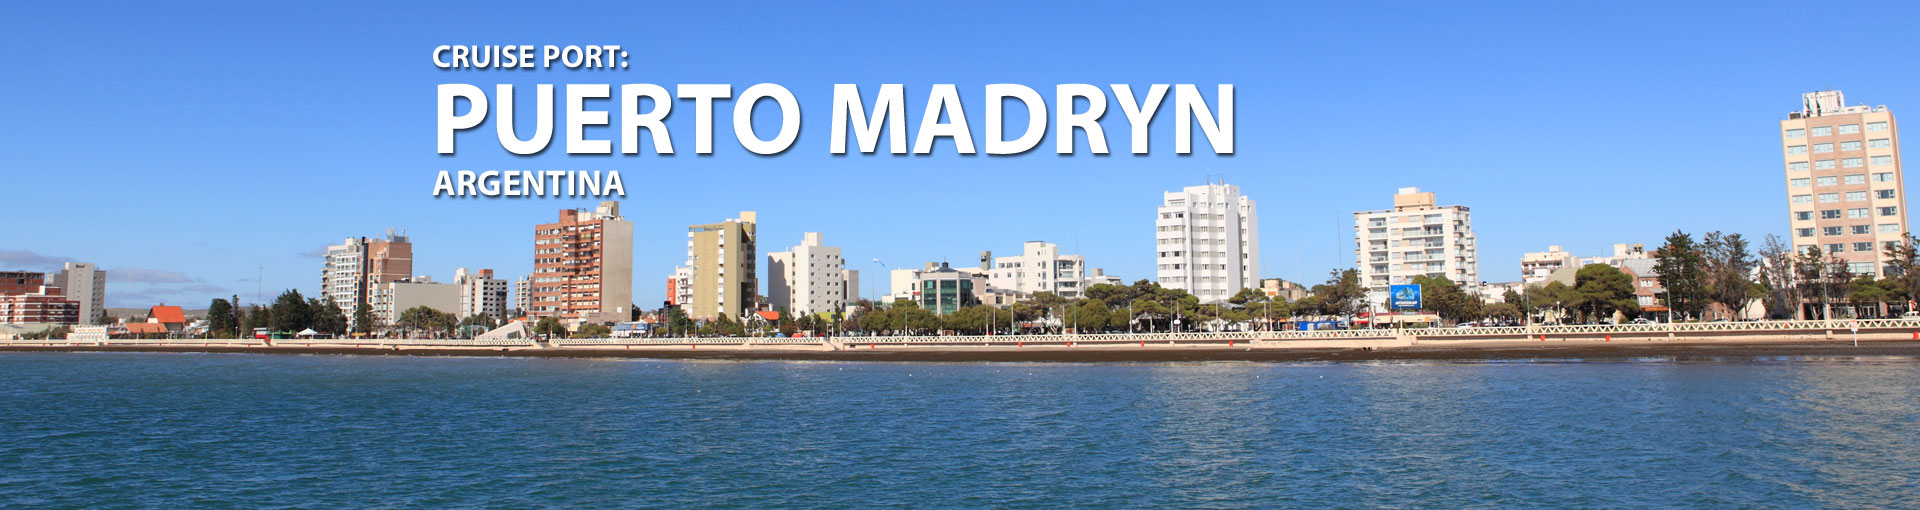 Cruises to Puerto Madryn, Argentina